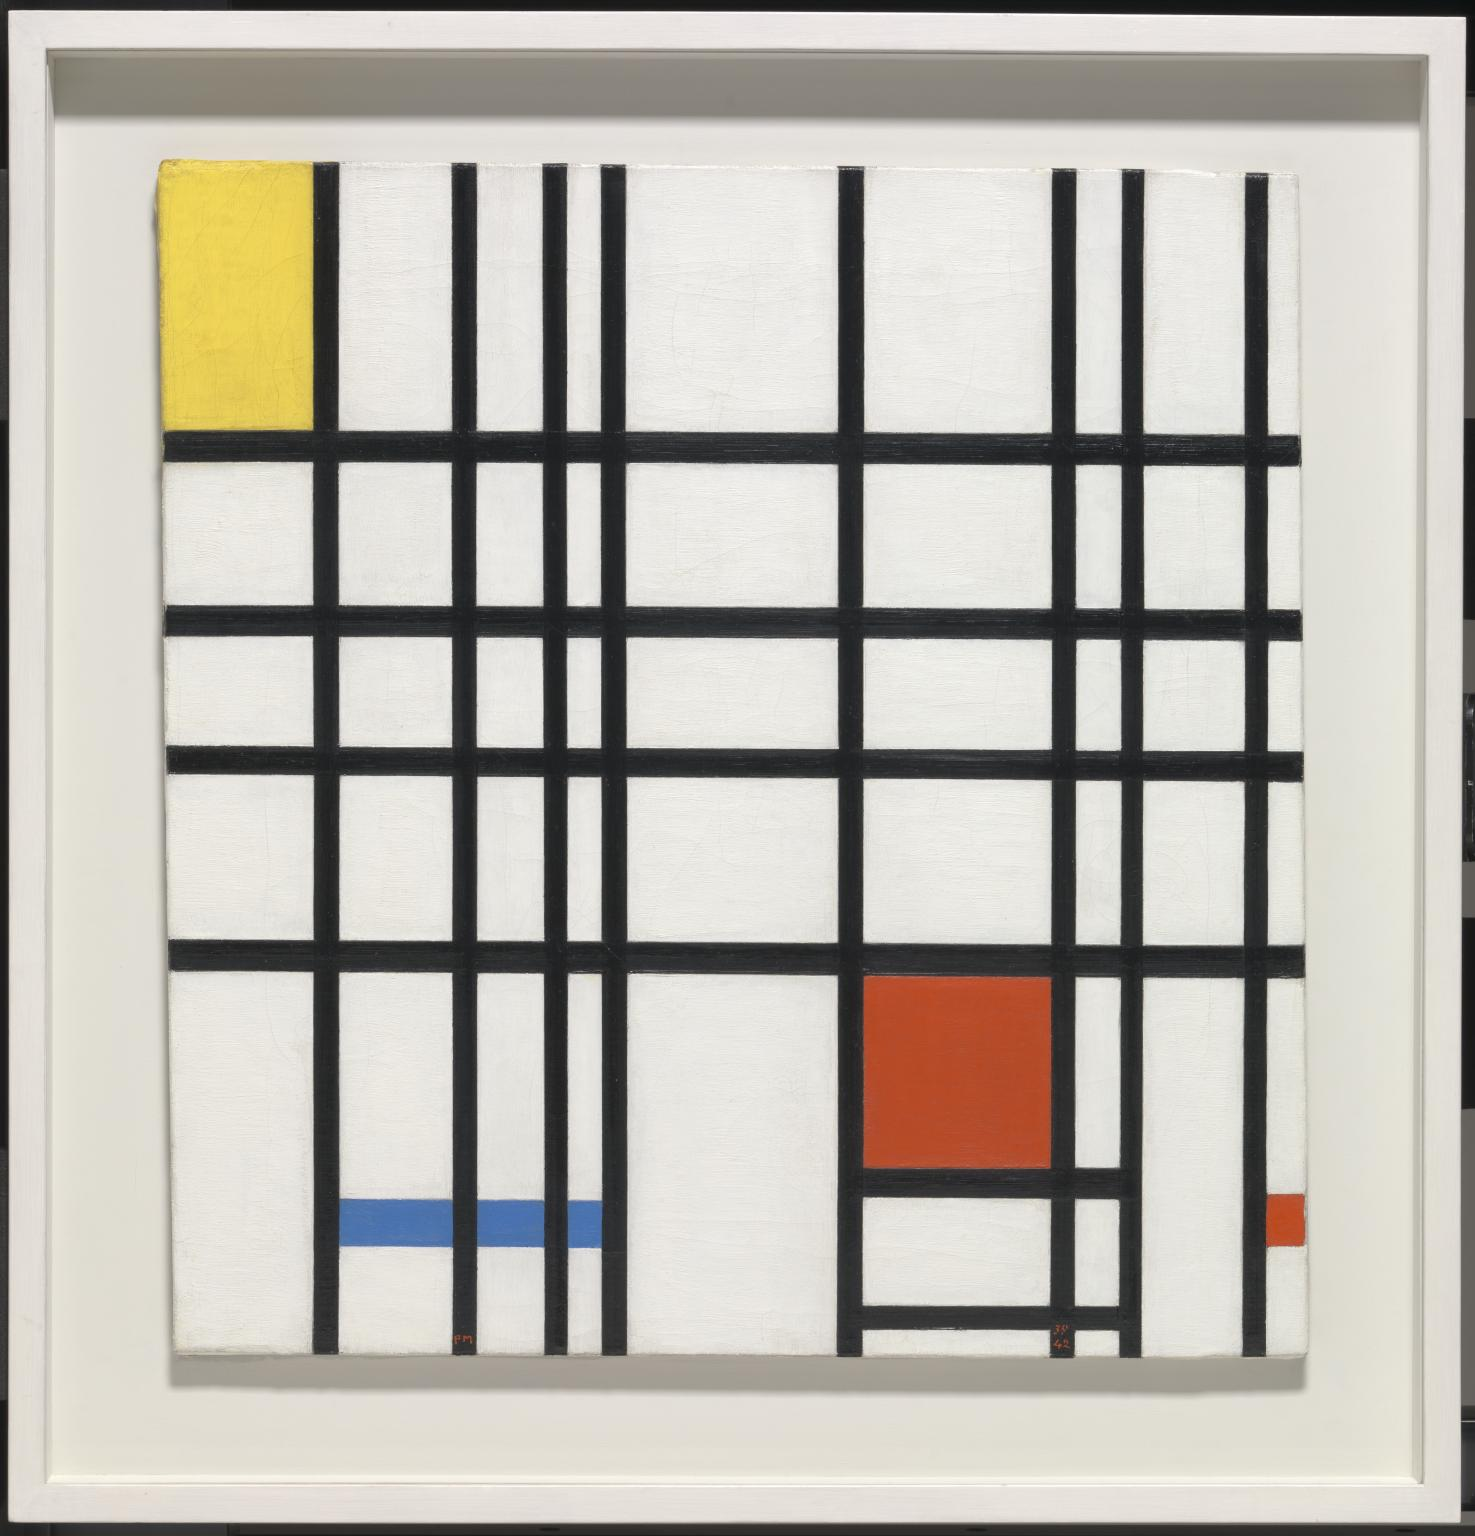 Piet Mondrian, Composition with Yellow, Blue and Red, 1937–42, oil on canvas, 72.7 x 69.2 cm (Tate)